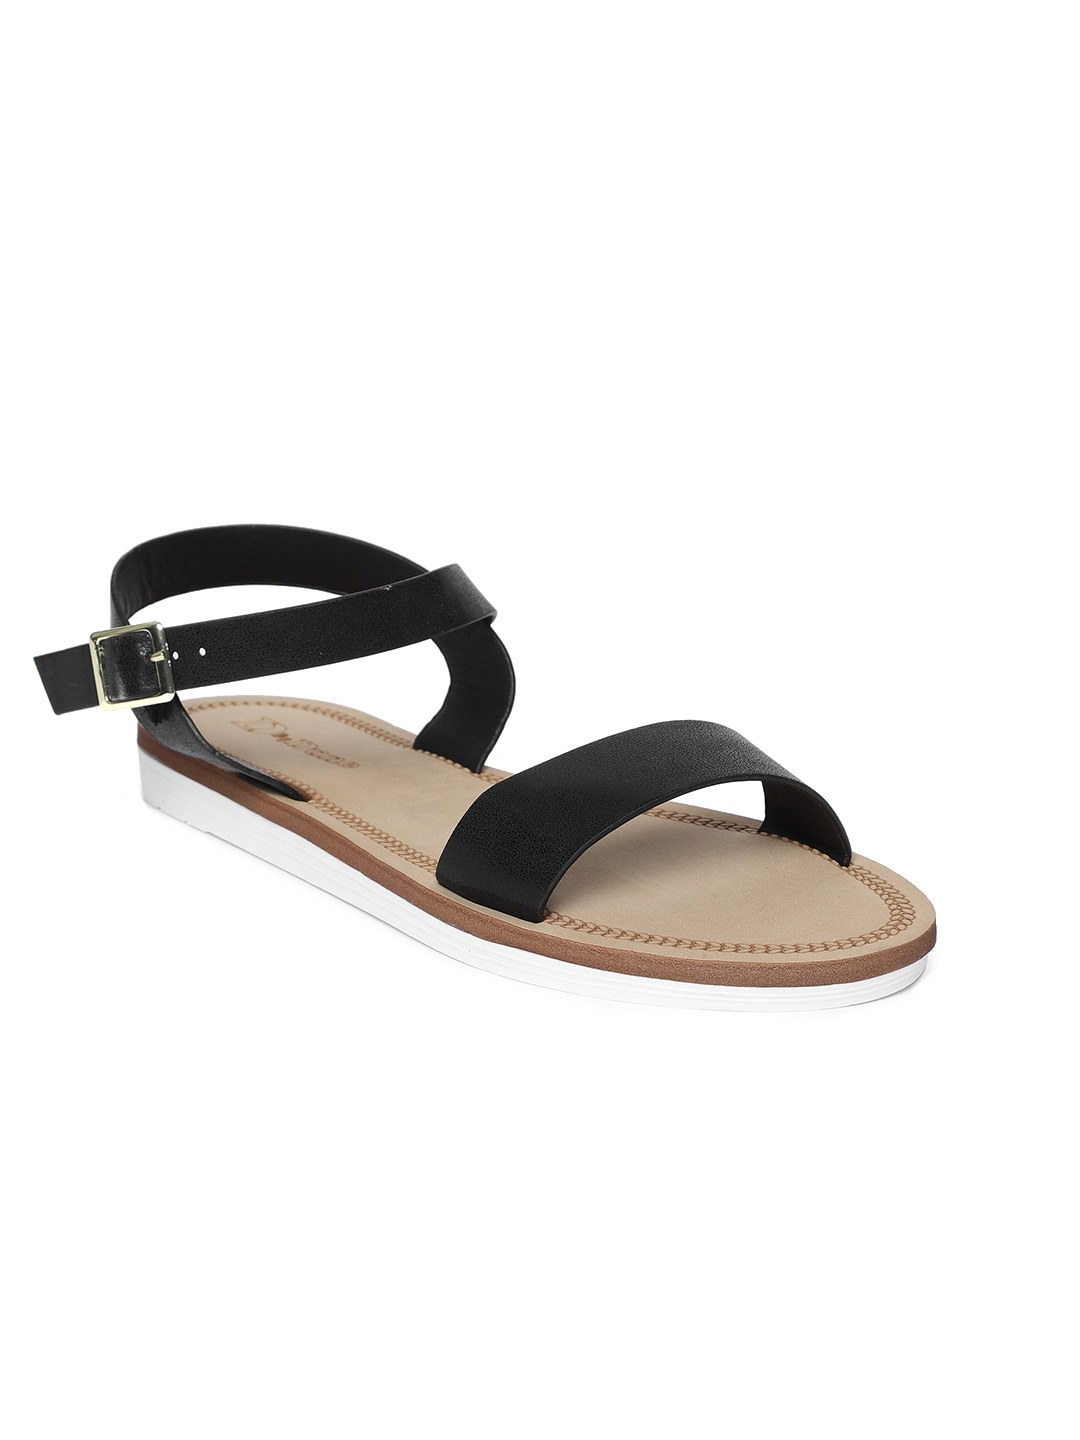 32691c4441f Casual Shoes For Women - Buy Women s Casual Shoes Online from Myntra